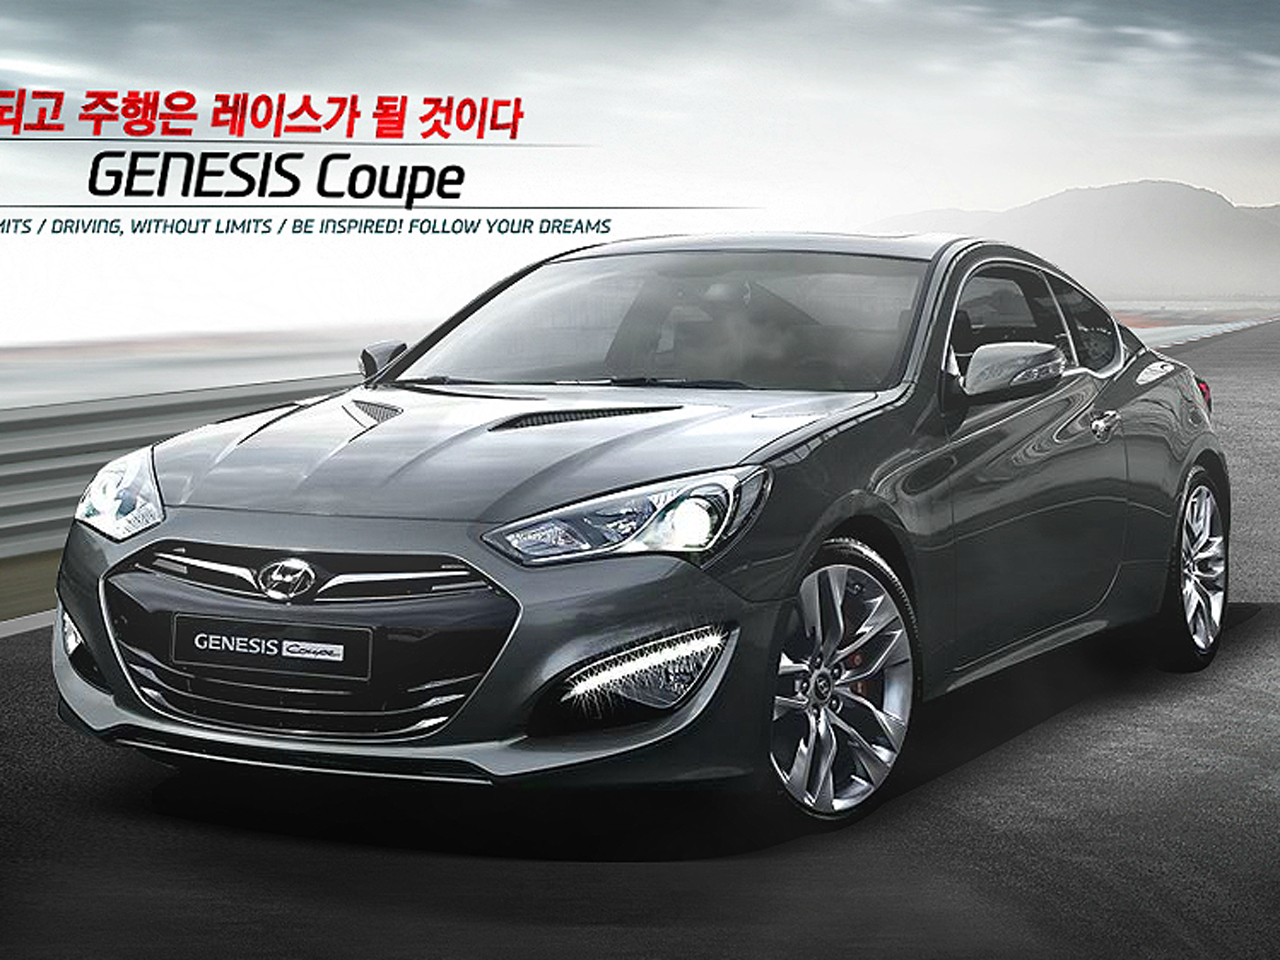 2020 Hyundai Genesis Coupe Exterior and Interior